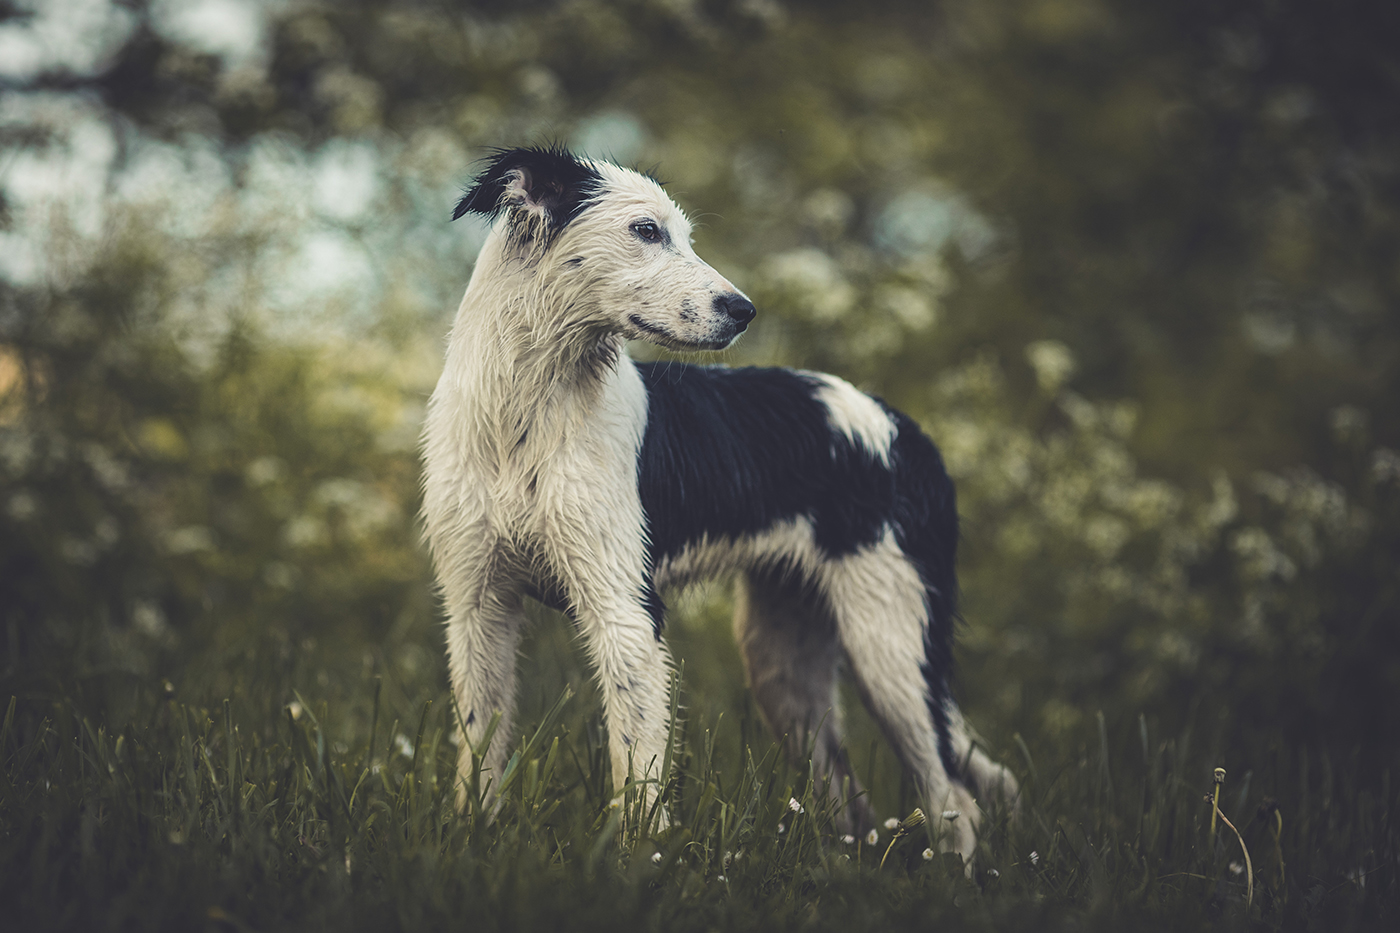 photographe-animaux-domestiques-chien-guillaume-heraud-02